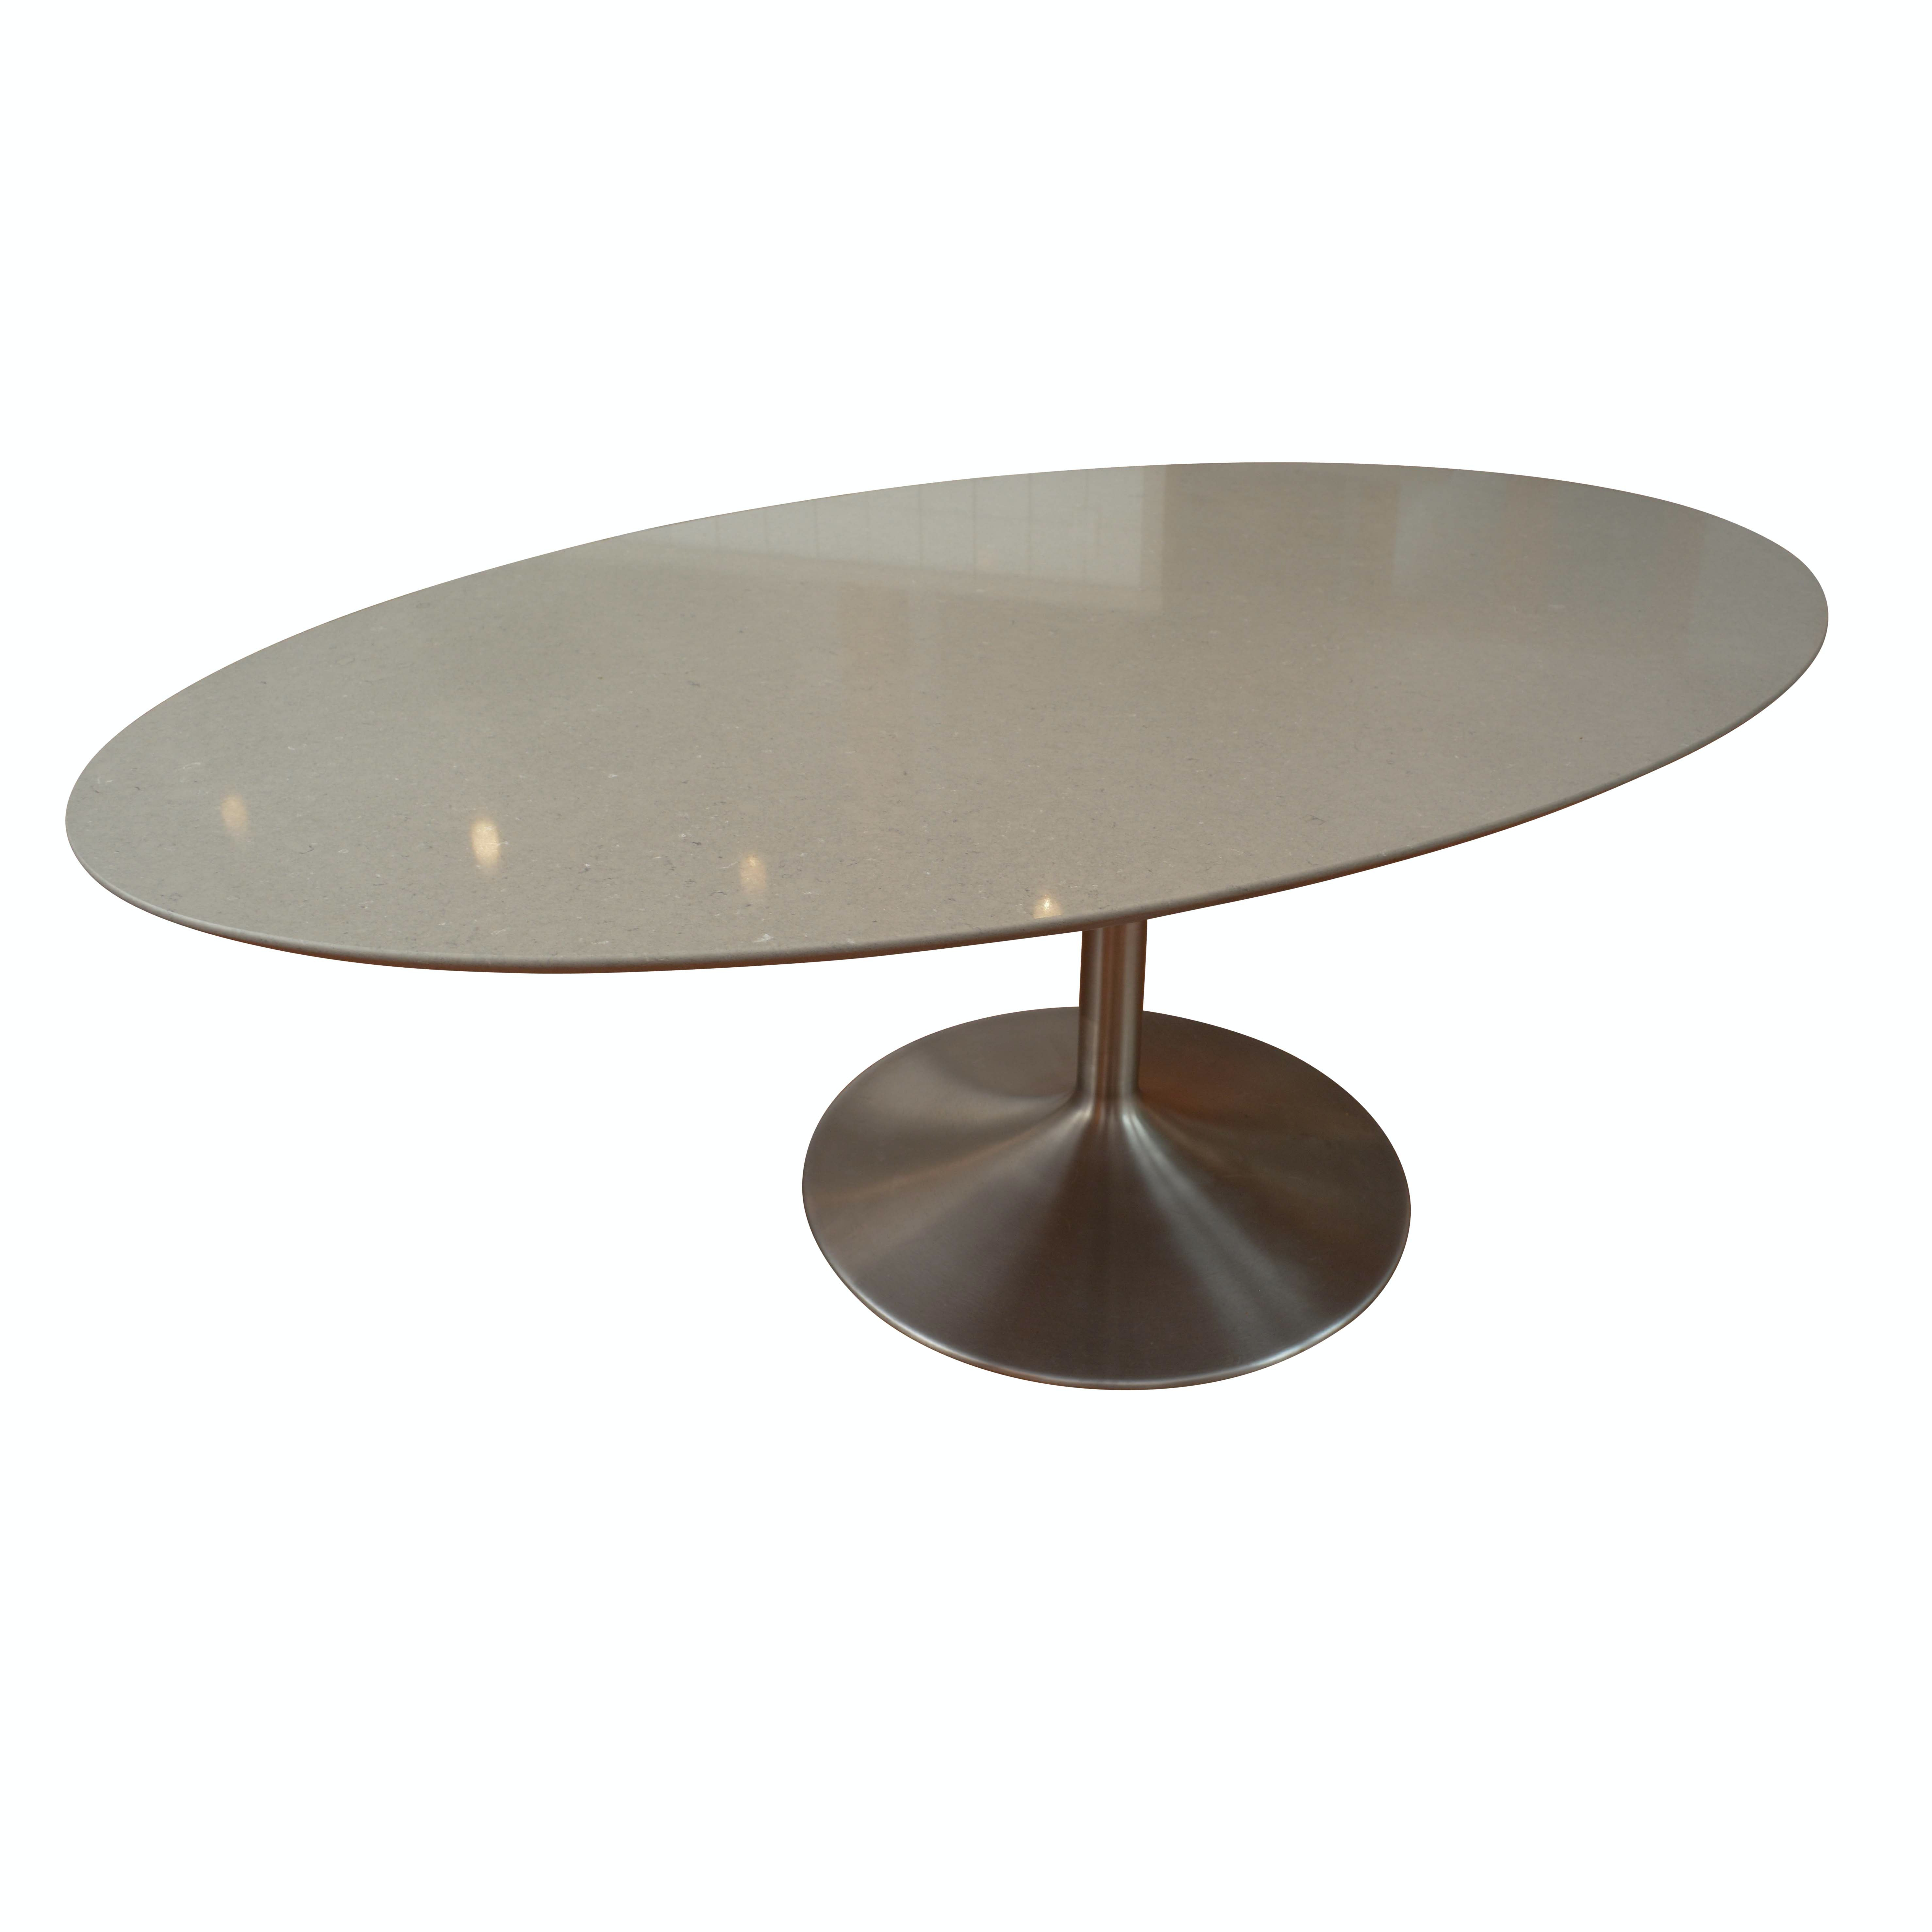 Stone Top Tulip Style Dining Table